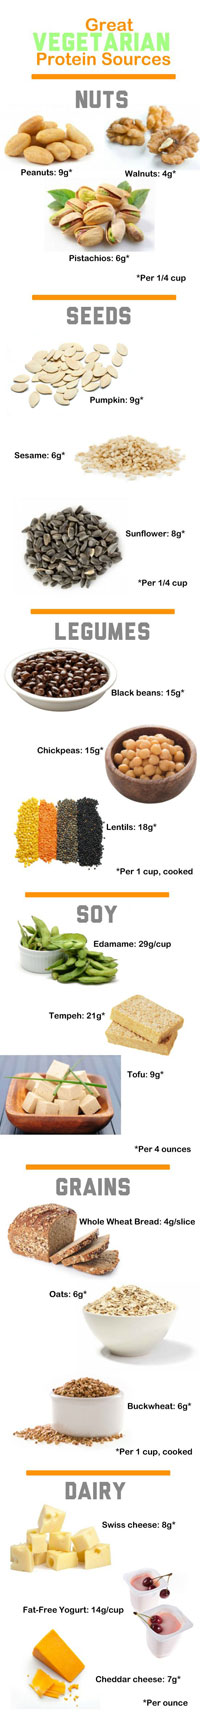 proteinsources